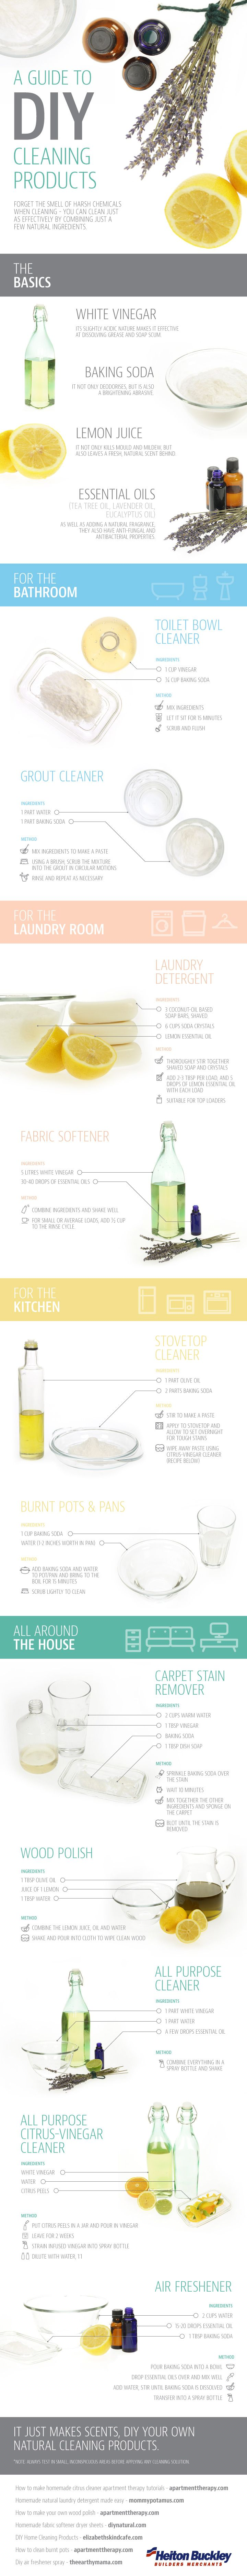 A Guide to #DIY Cleaning Products: Cleaners that contain strong chemicals and disinfectants pose health risks for people & pets, & when they're washed down the drain, they contaminate our waterways & soil. Help the environment and wildlife by making your own #green products that are just as effective as store-bought options.